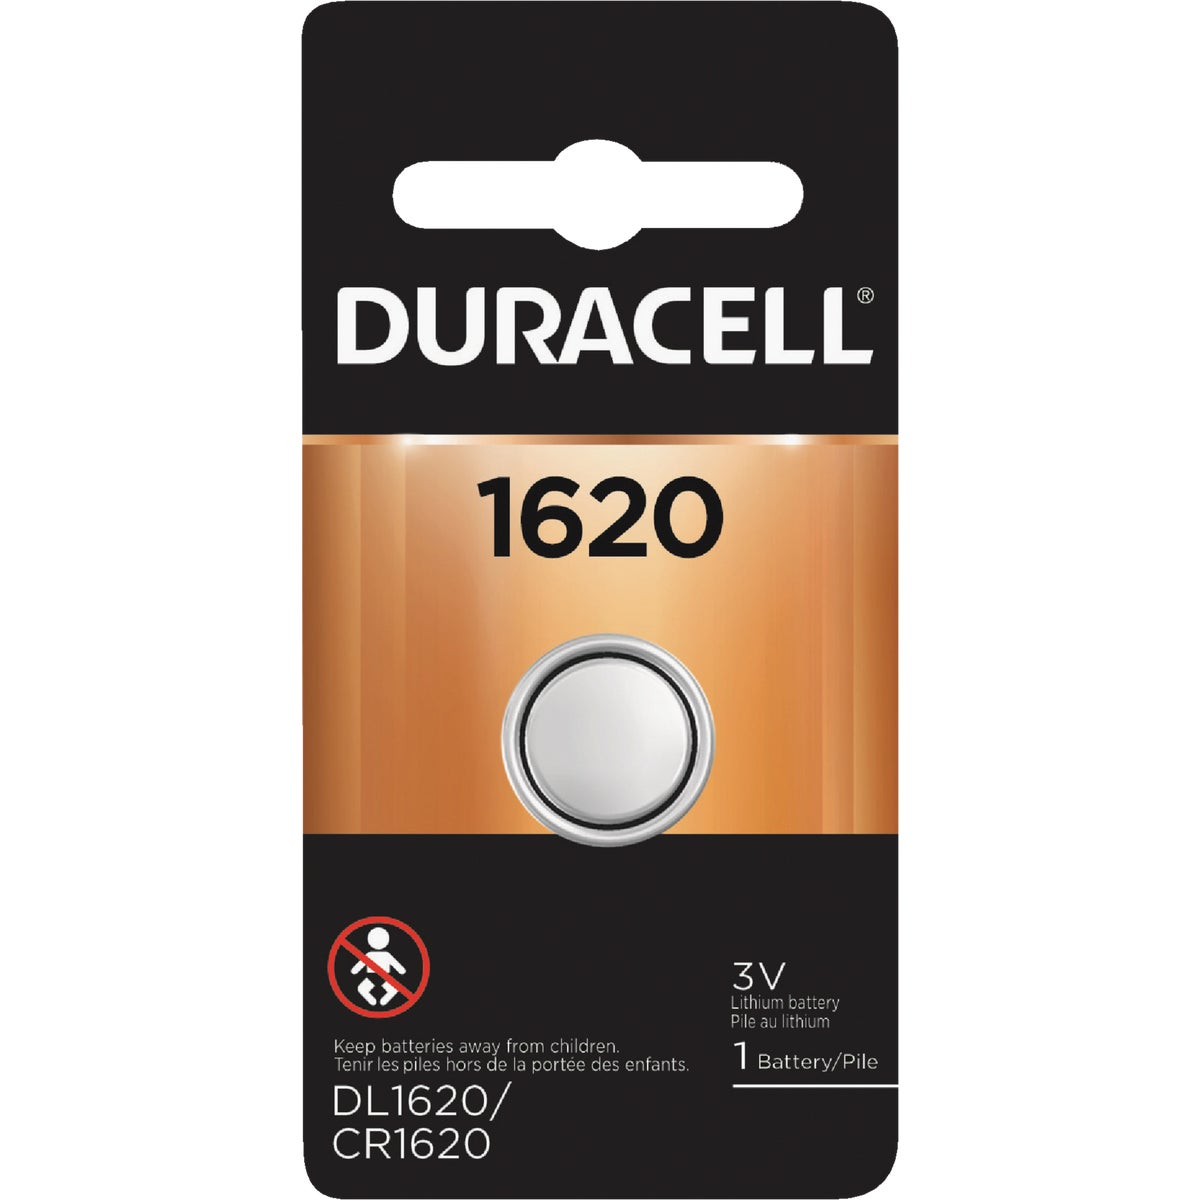 DL1620 3V SECUR BATTERY